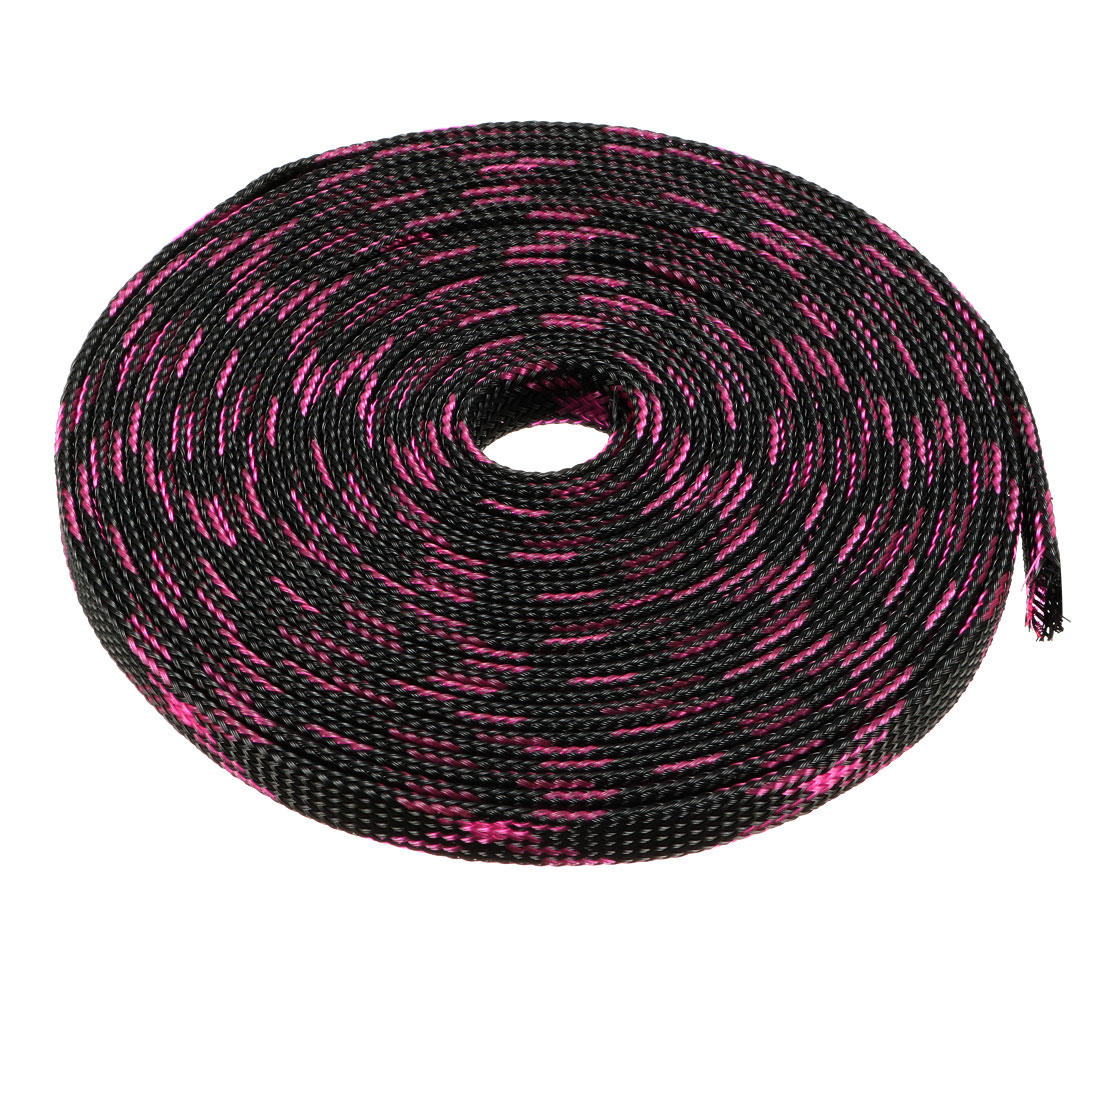 PET Braided Sleeving 16.4 Feet 5m Expandable Cable Wrap 10mm Diameter Wire Sheath Black,Pink